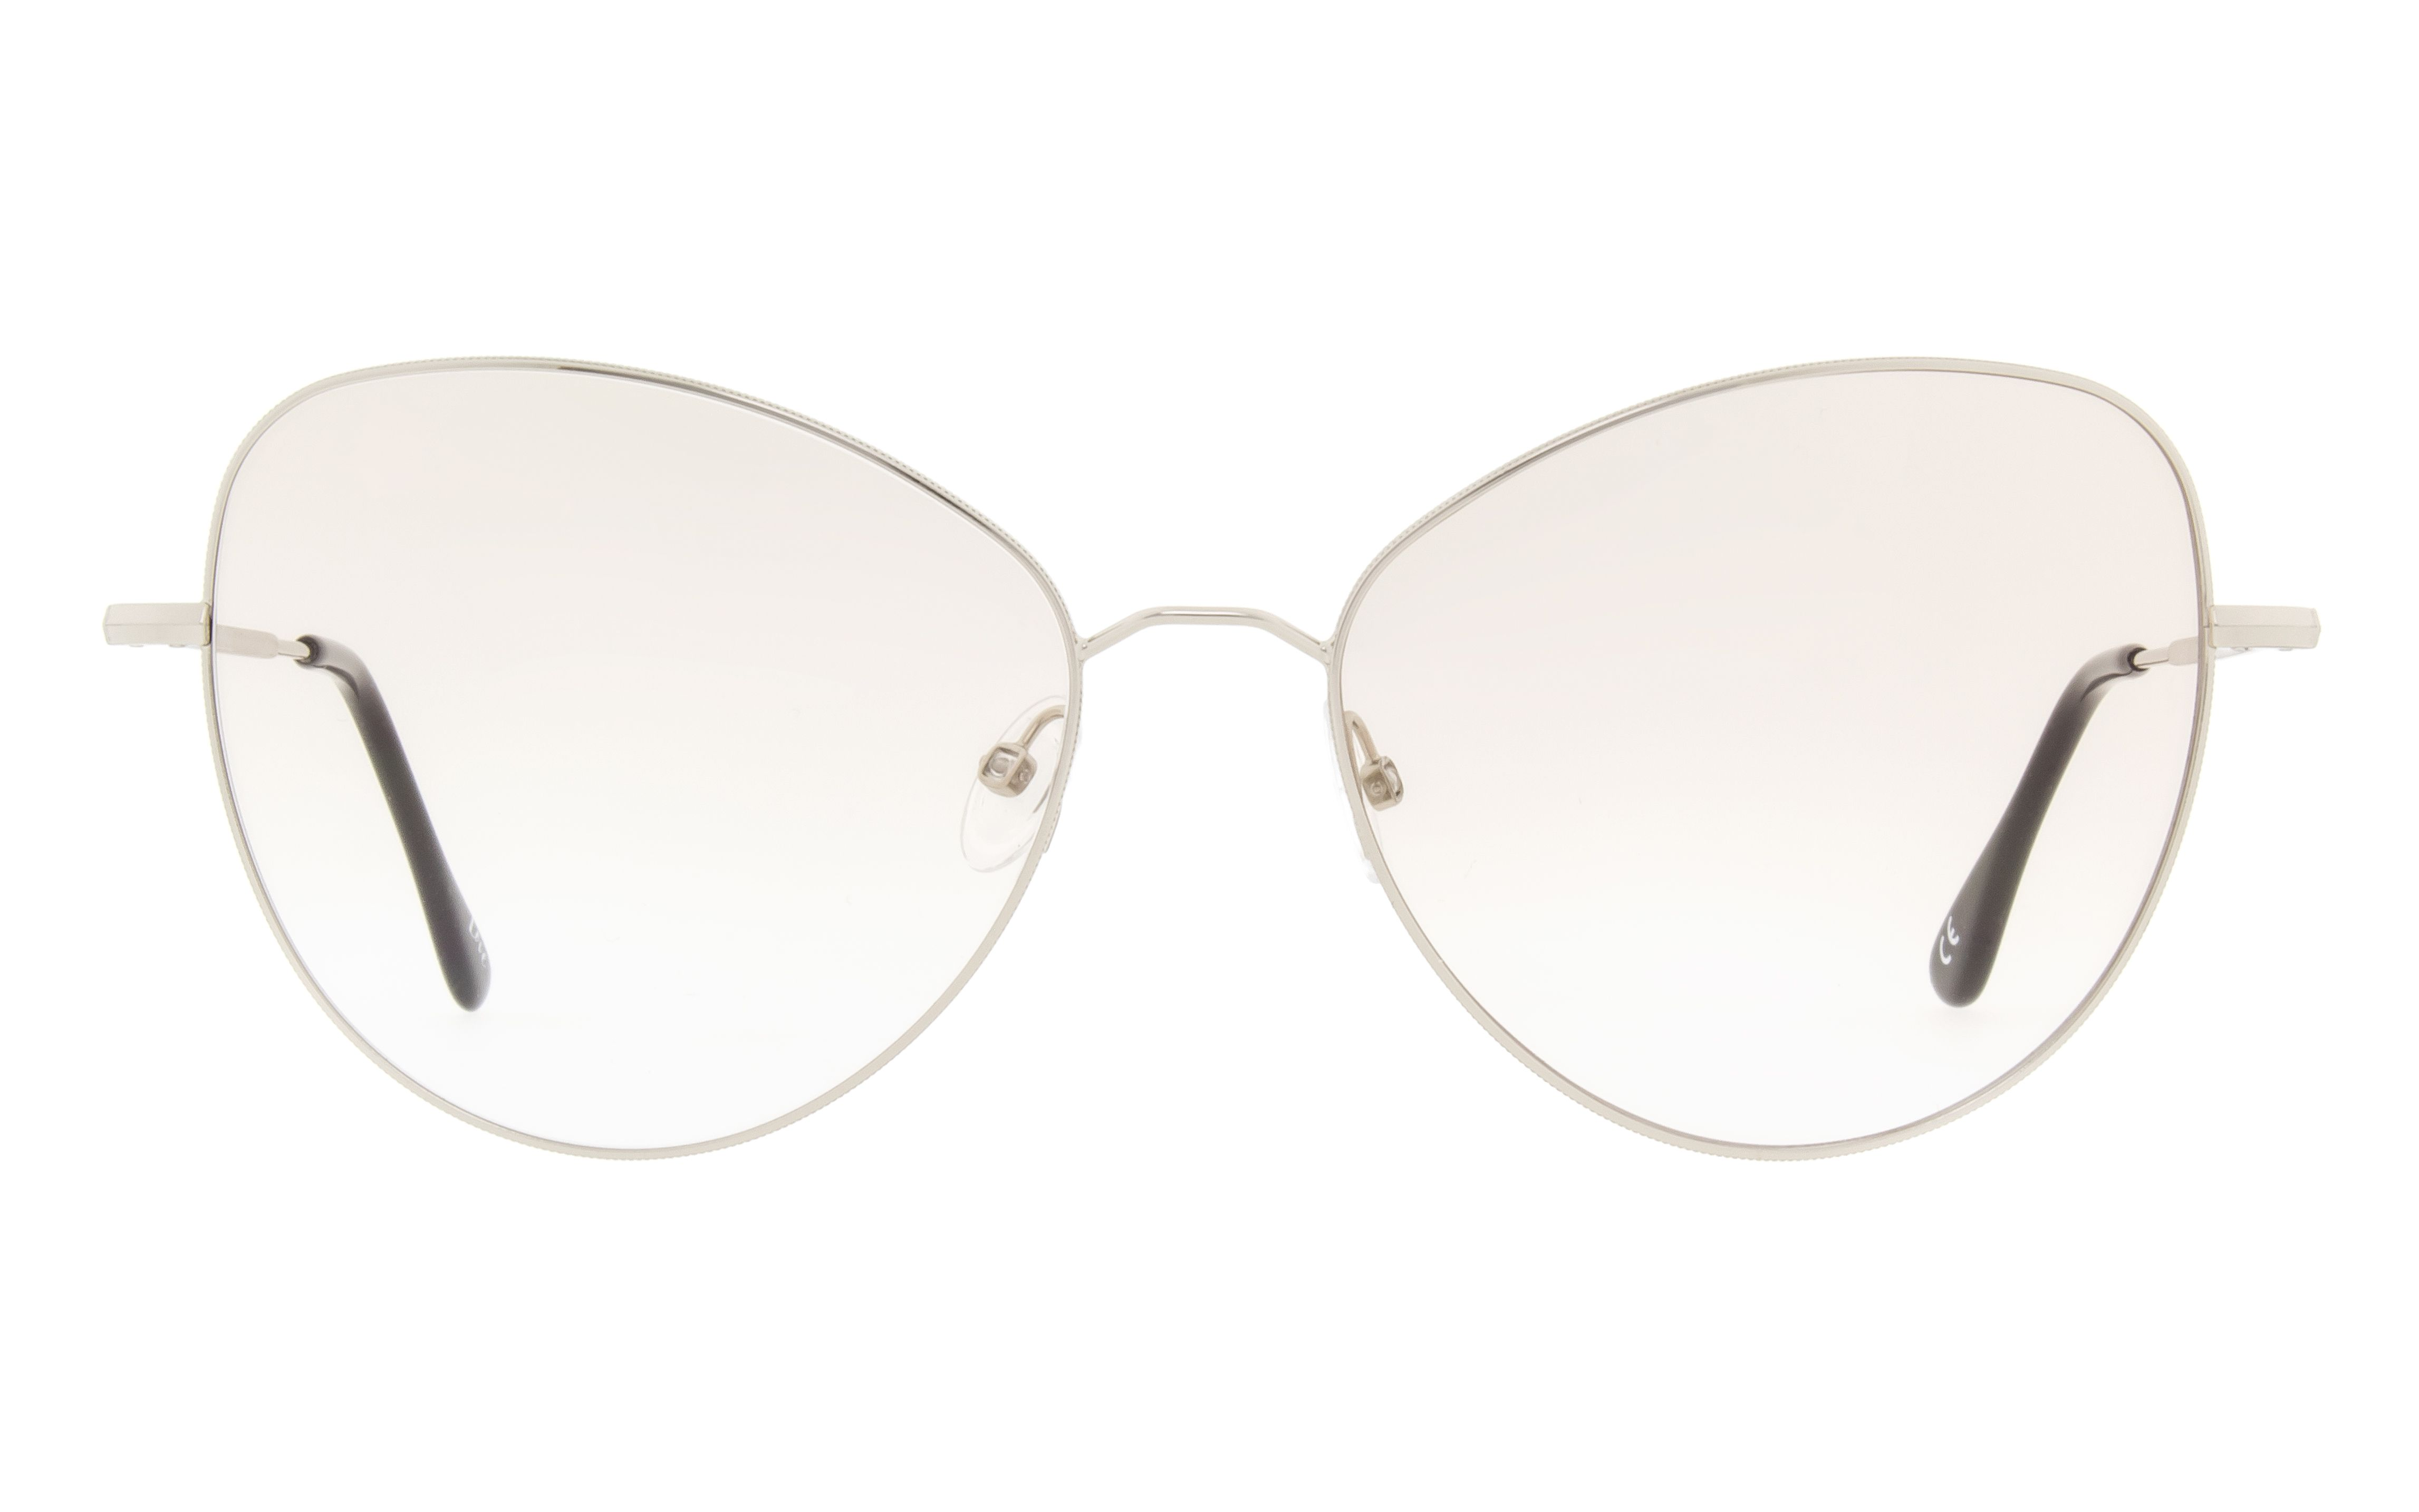 ab0a03e5fd The ANDY WOLF EYEWEAR 4740 glasses from our LOVE collection in silver.